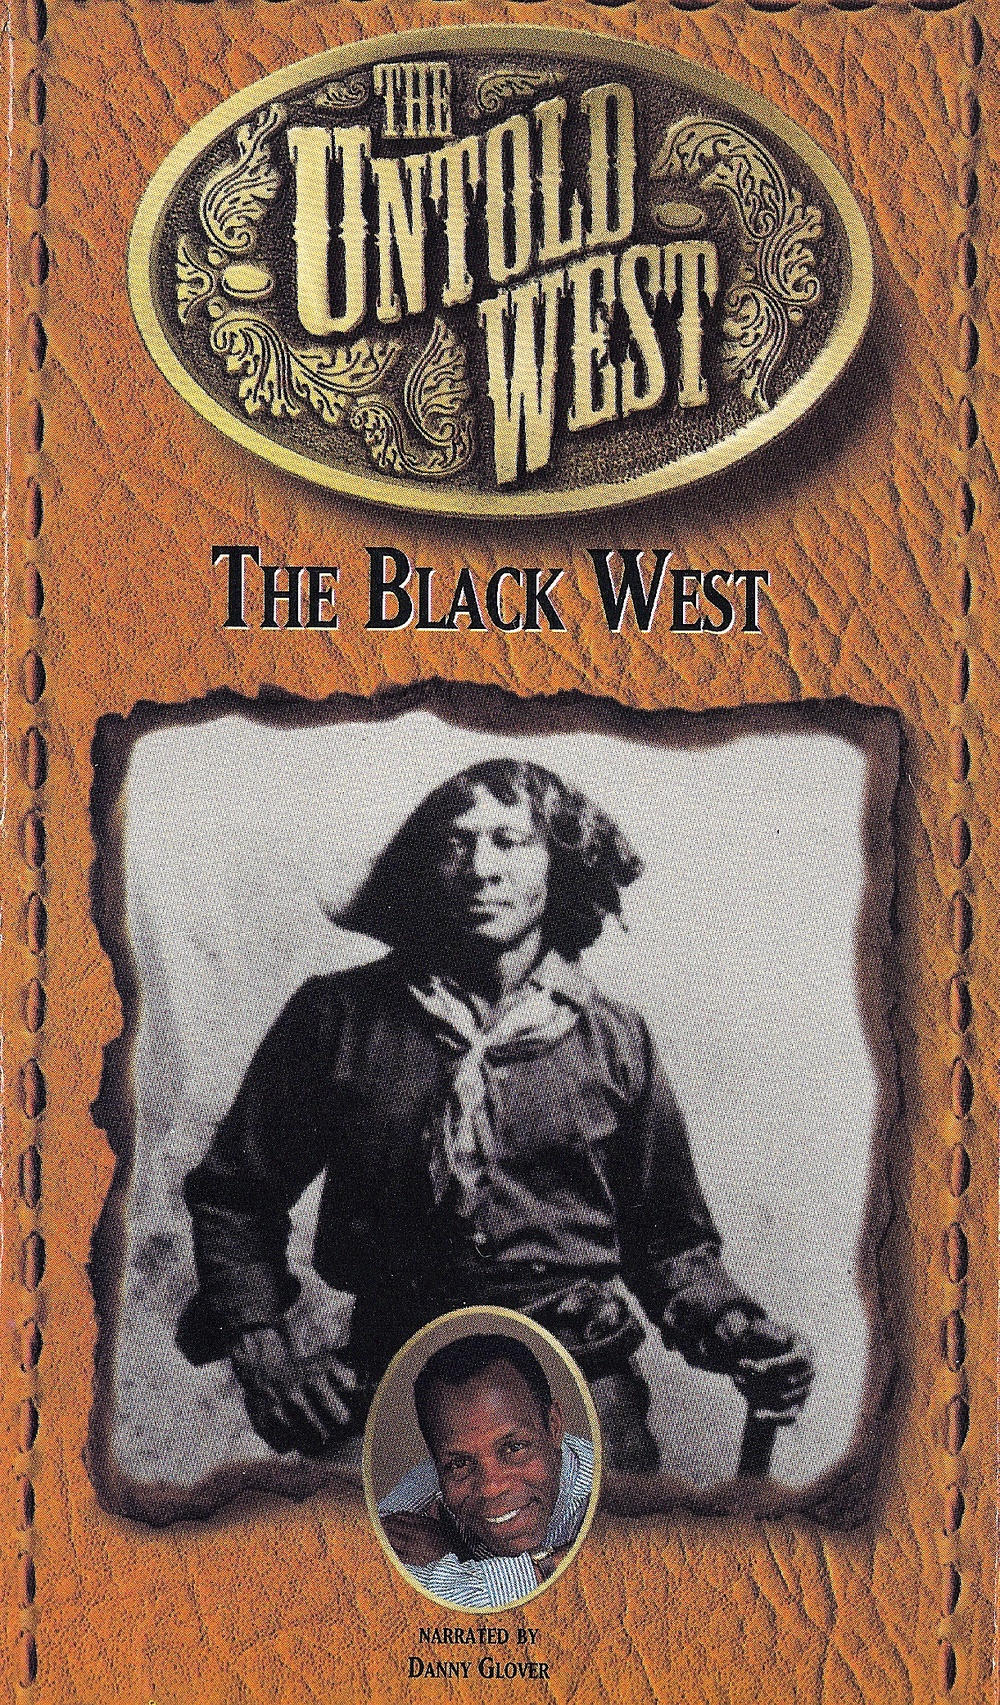 BLACK WEST copy.jpg